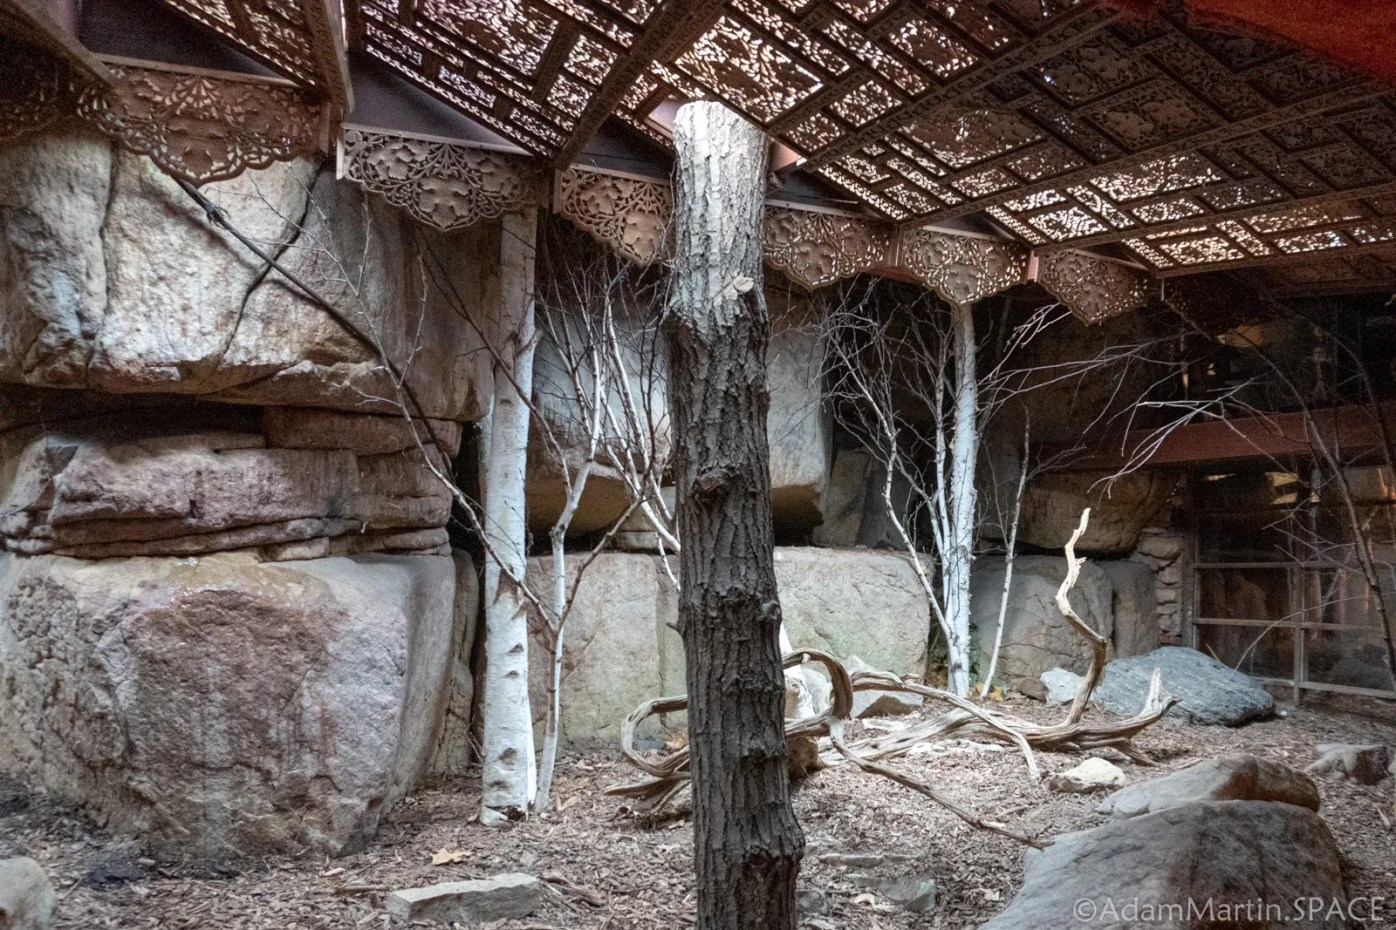 House On The Rock - Interior Rooms With Trees Growing Through